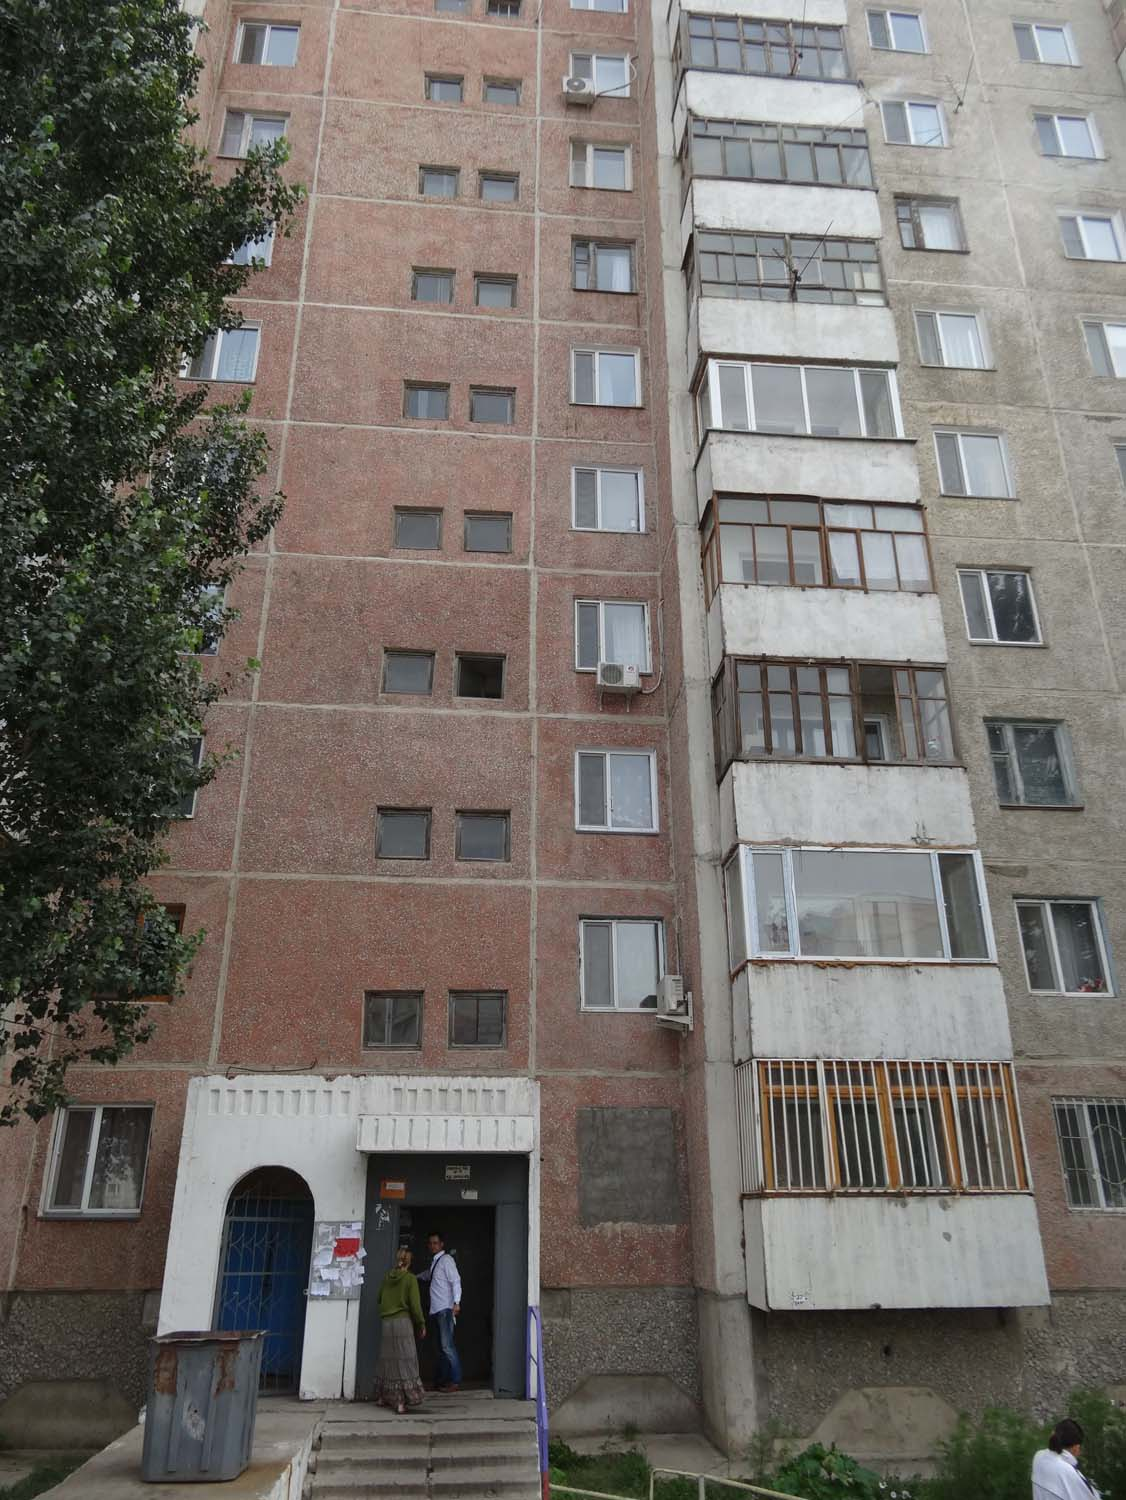 Baurzhan's parents live inside this apartment block